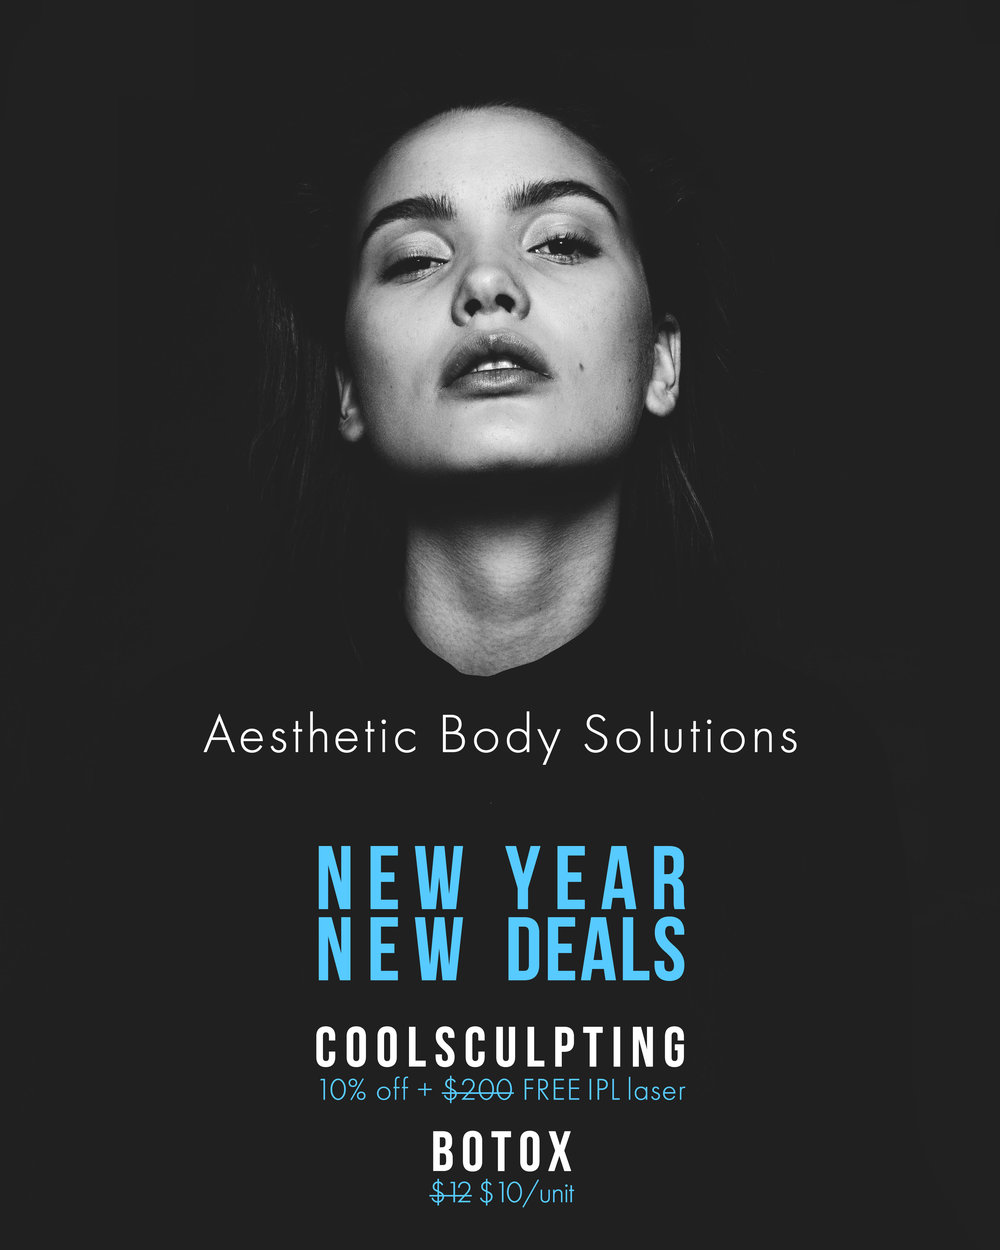 Aesthetic Body Solutions - New Year New Deals - BOTOX - CoolSculpting.jpg